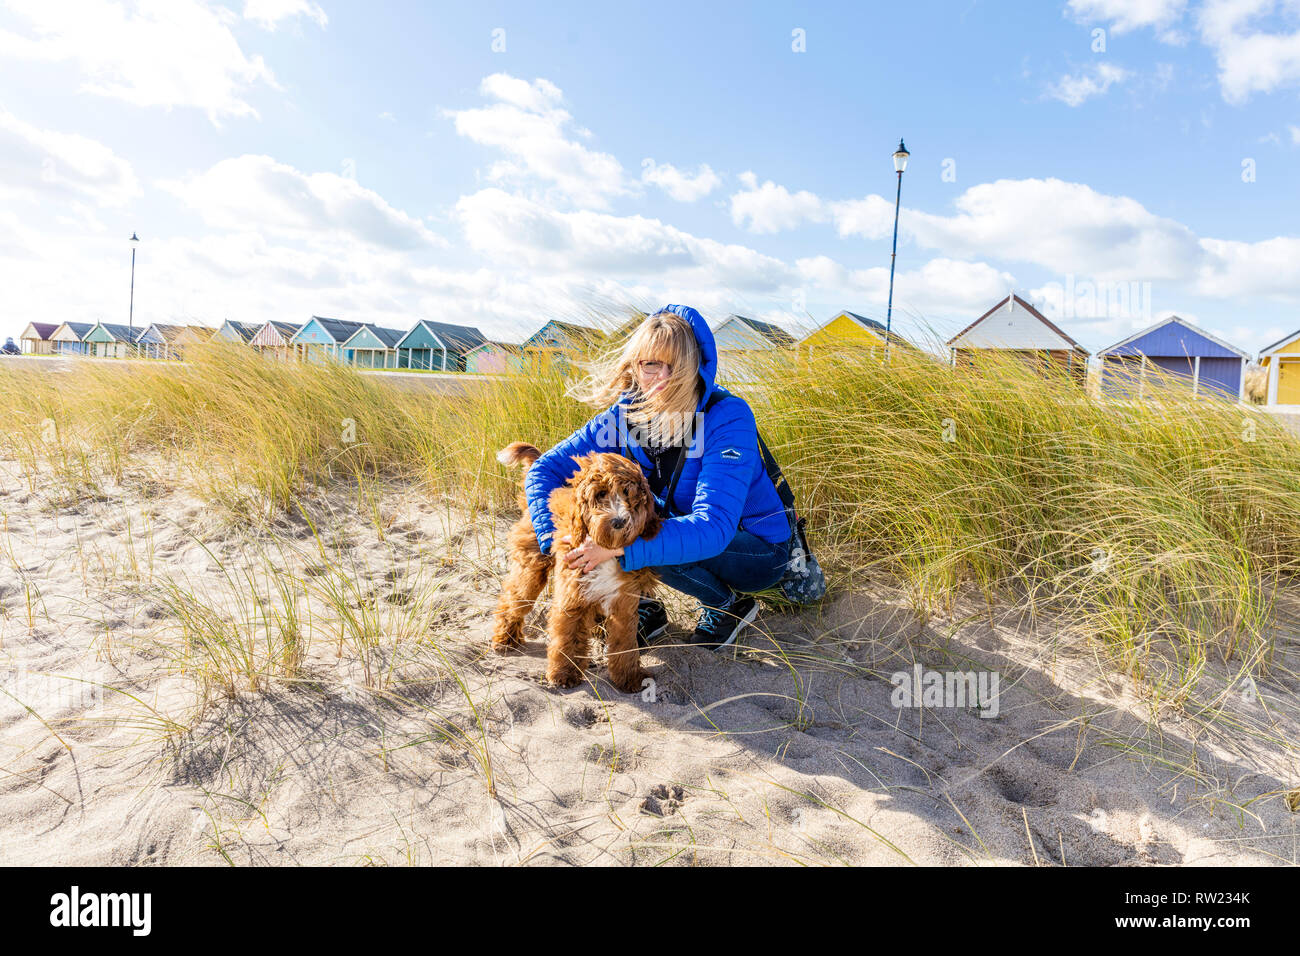 Sutton On Sea, Lincolnshire, UK. 04th Mar, 2019. UK Weather: 04/03/19 Bright, sunny but vwery windy day greats dog walker Lesley Thompson and Cockapoo Dexter on the sand dunes of Sutton On Sea, Lincolnshire, East coast, UK England. Clouds forming over the Chalets lining the sea front Credit: Tommy  (Louth)/Alamy Live News - Stock Image